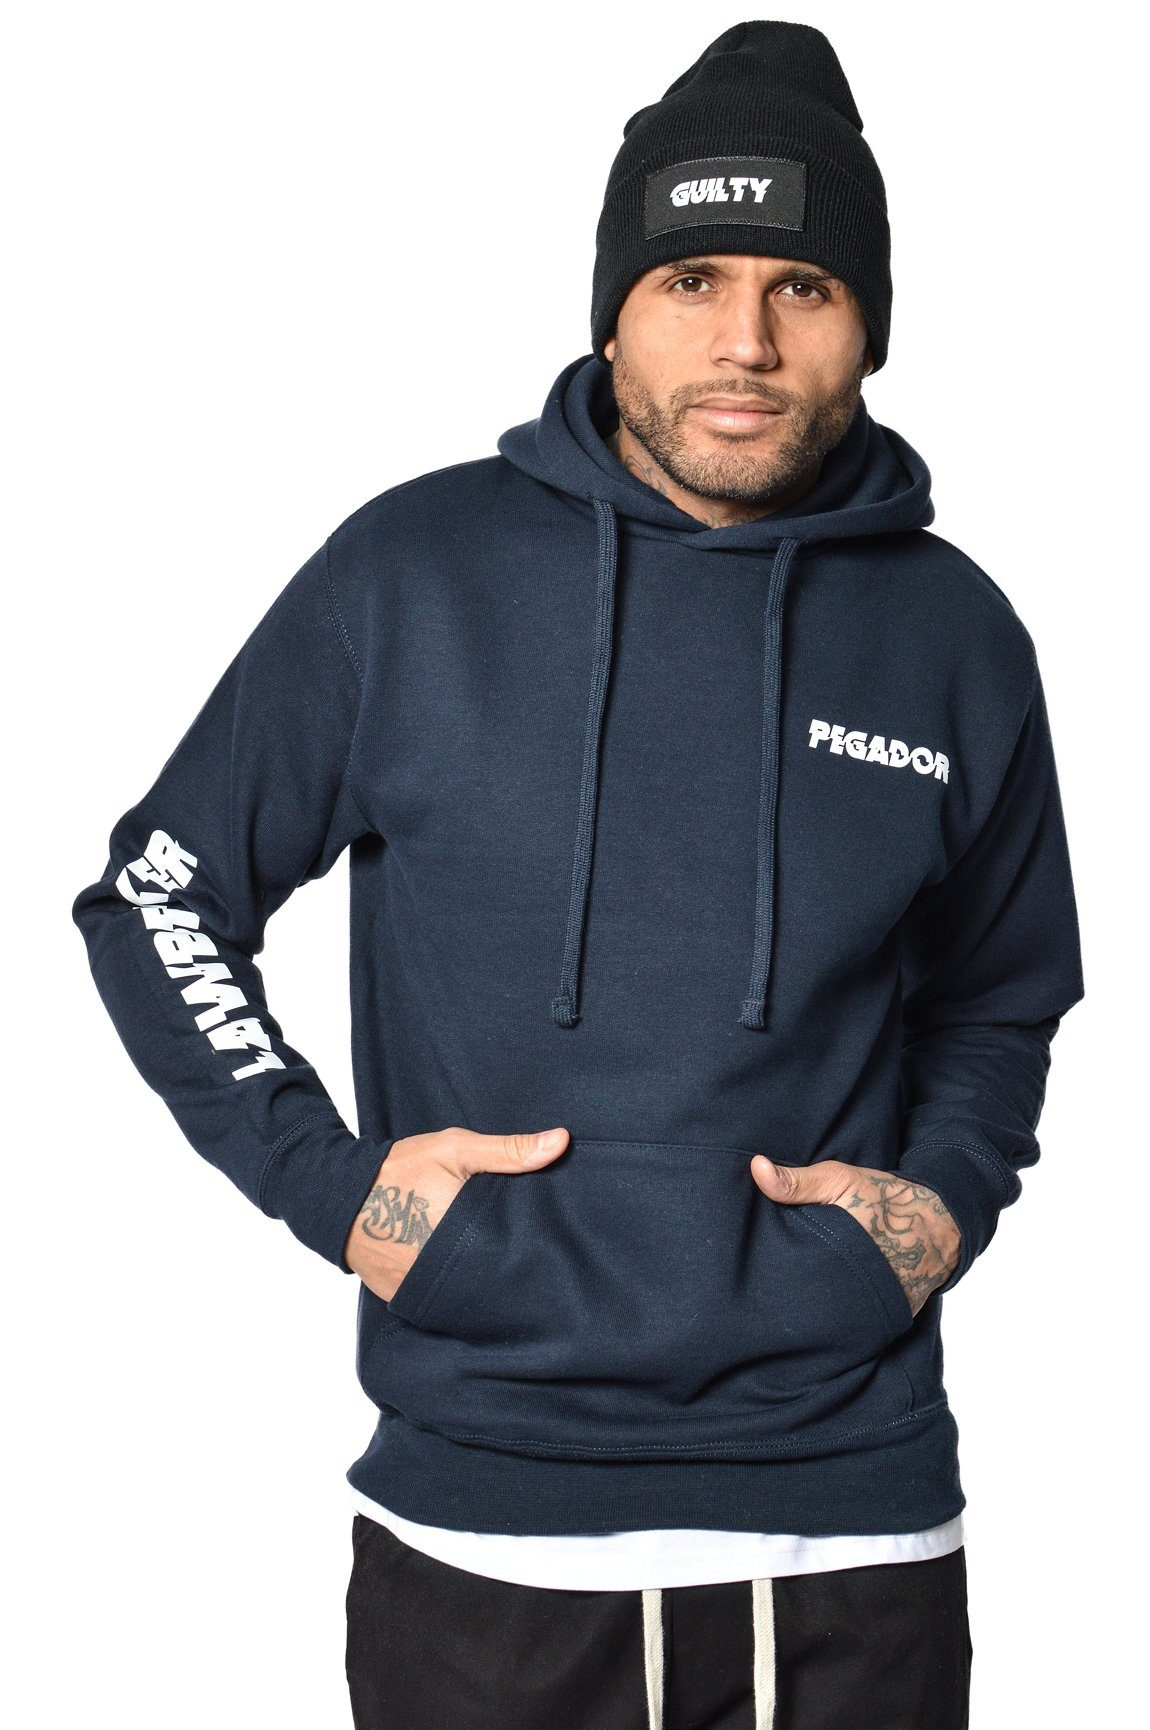 Guilty Hoodie French Navy - PEGADOR - Dominate the Hype